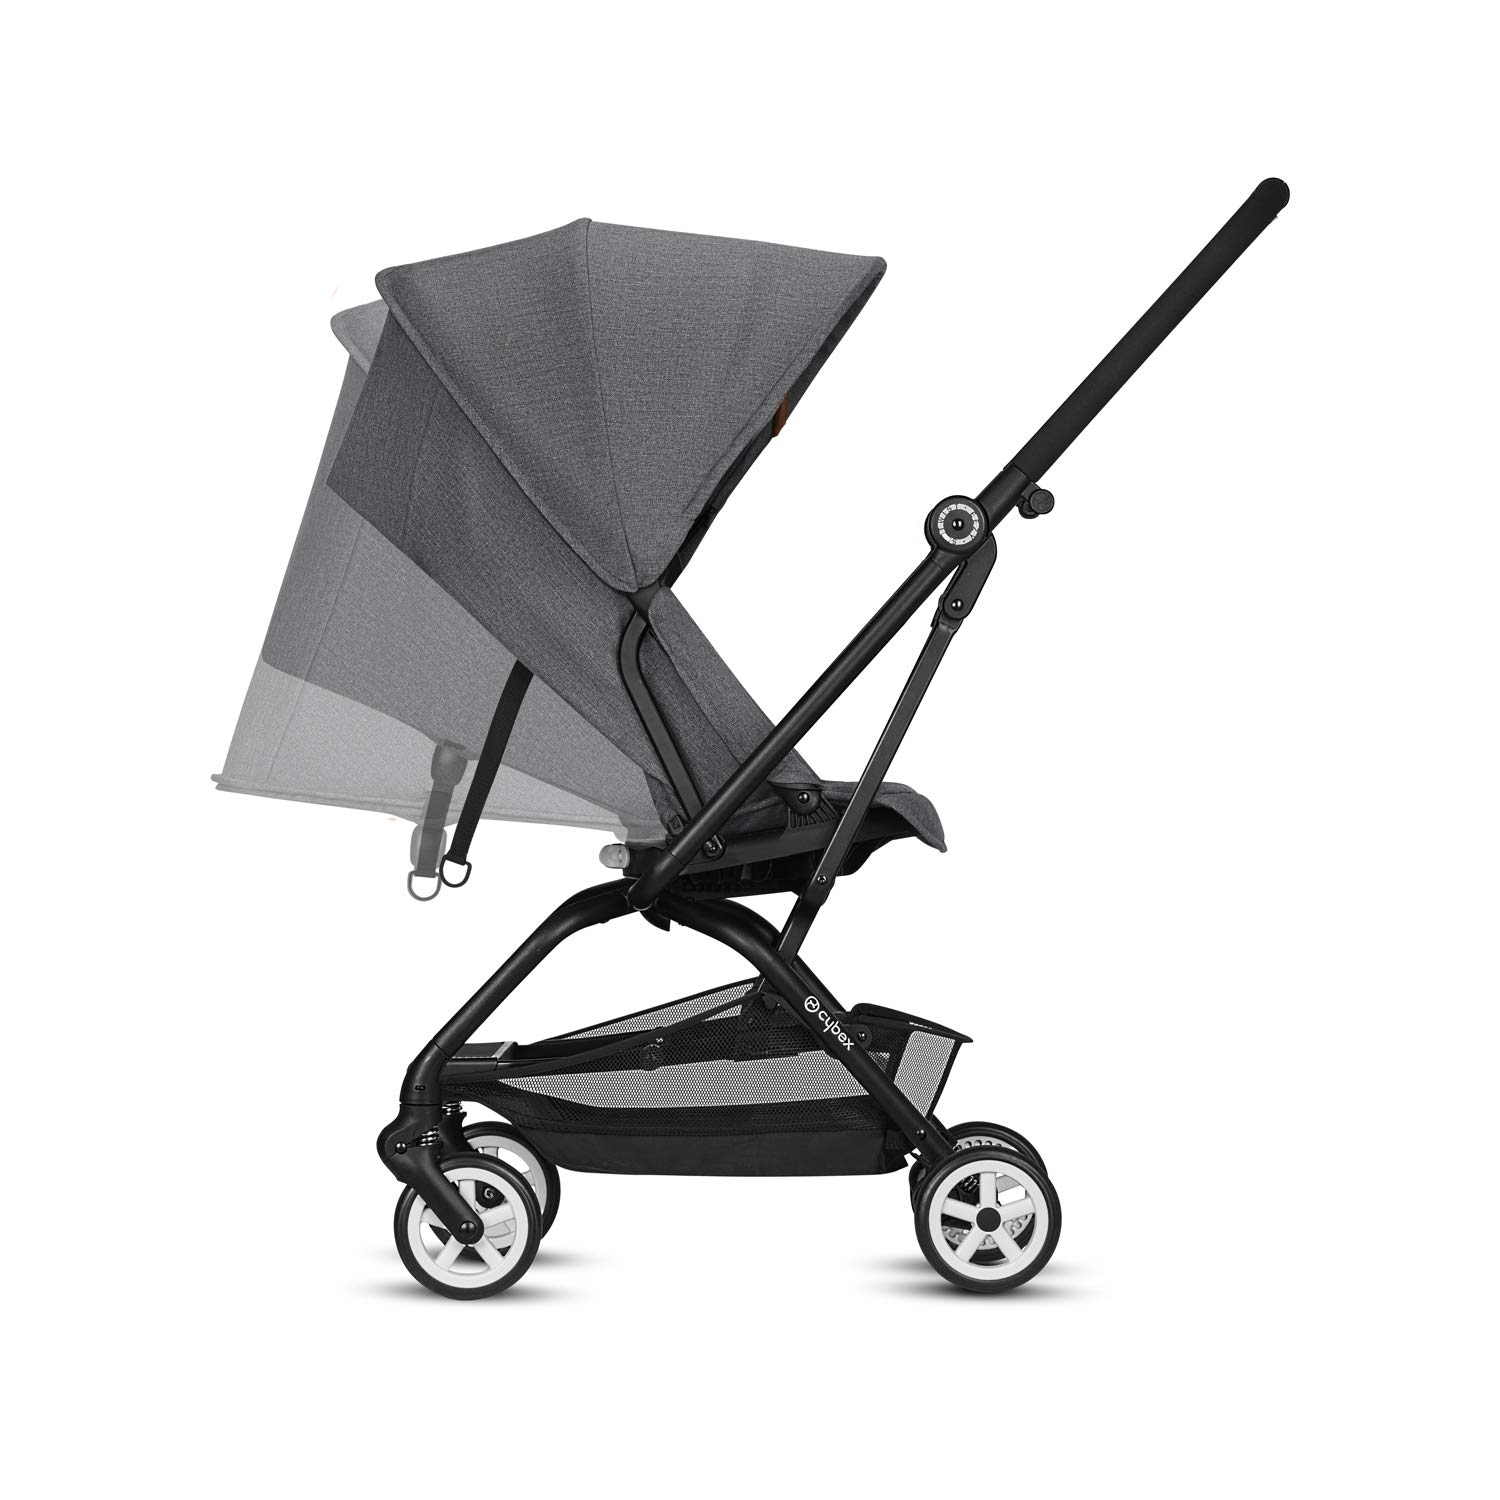 Amazon.com : Cybex 2018 Eezy S Twist Manhattan Grey : Baby